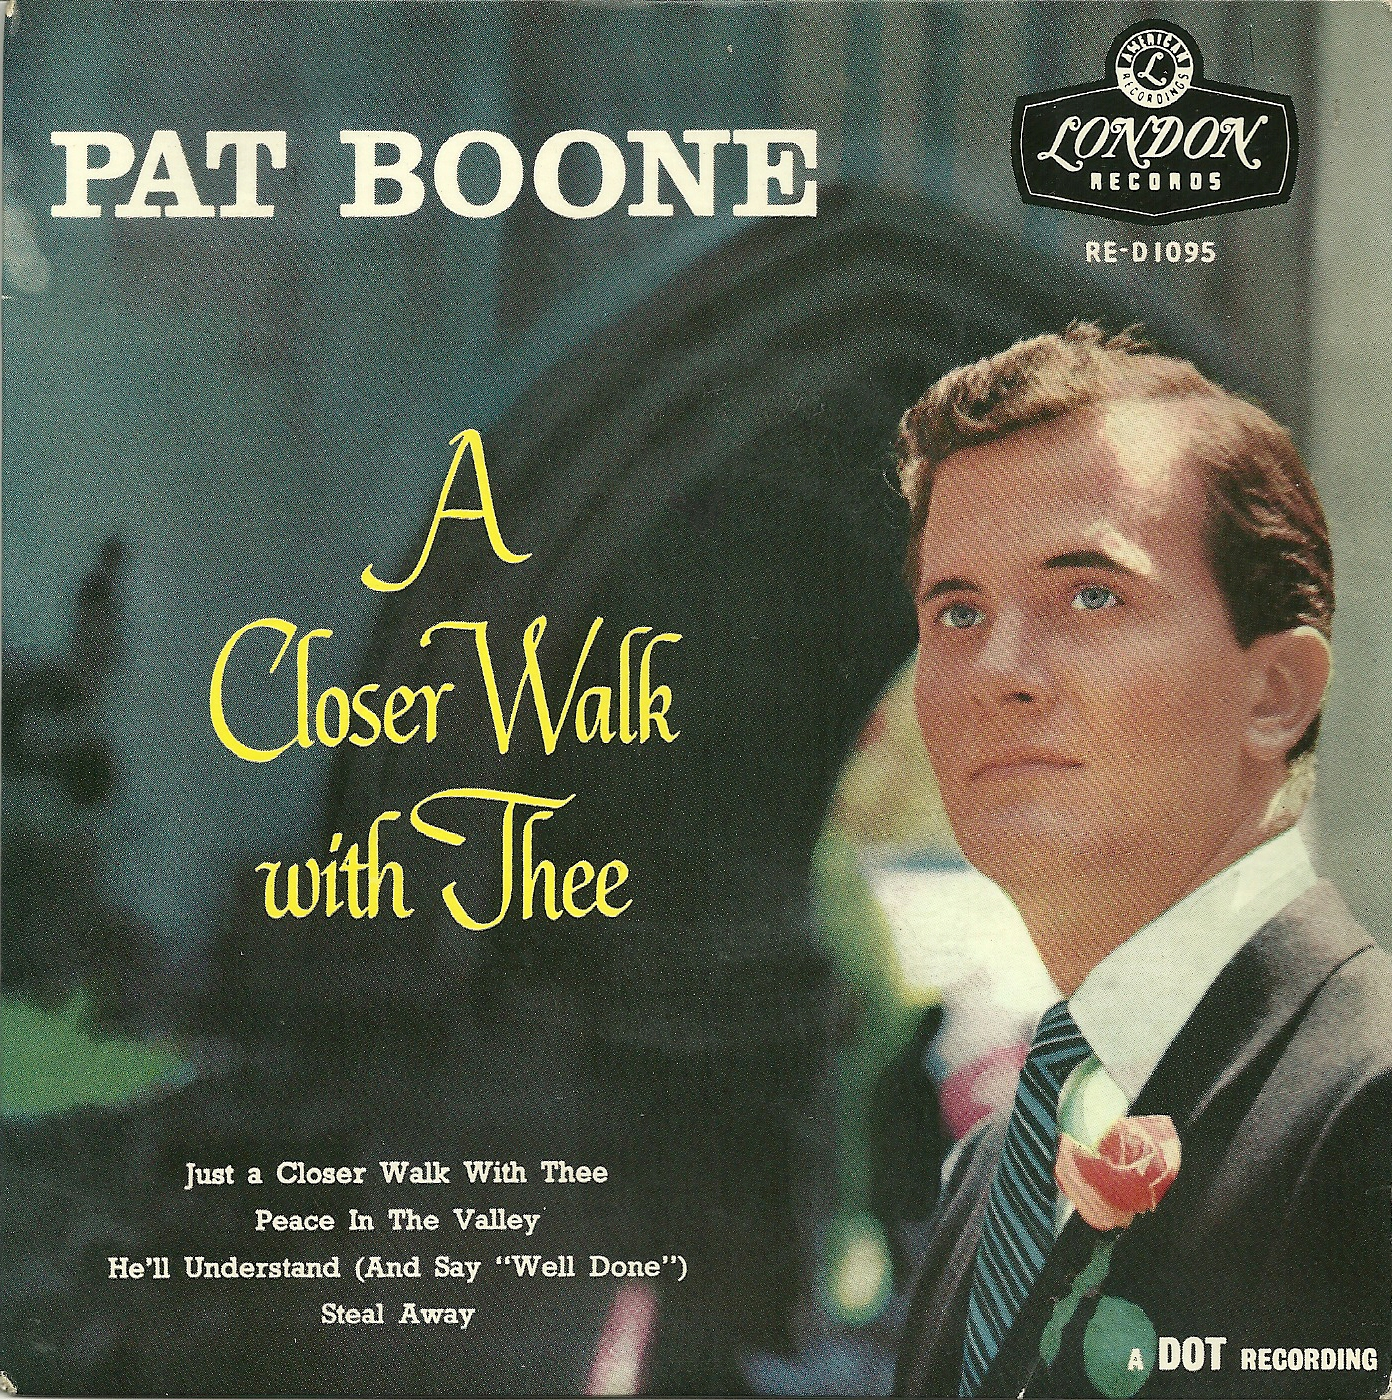 Pat Boone Wallpapers pat boone a closer walk with thee pat boone images wallpapers